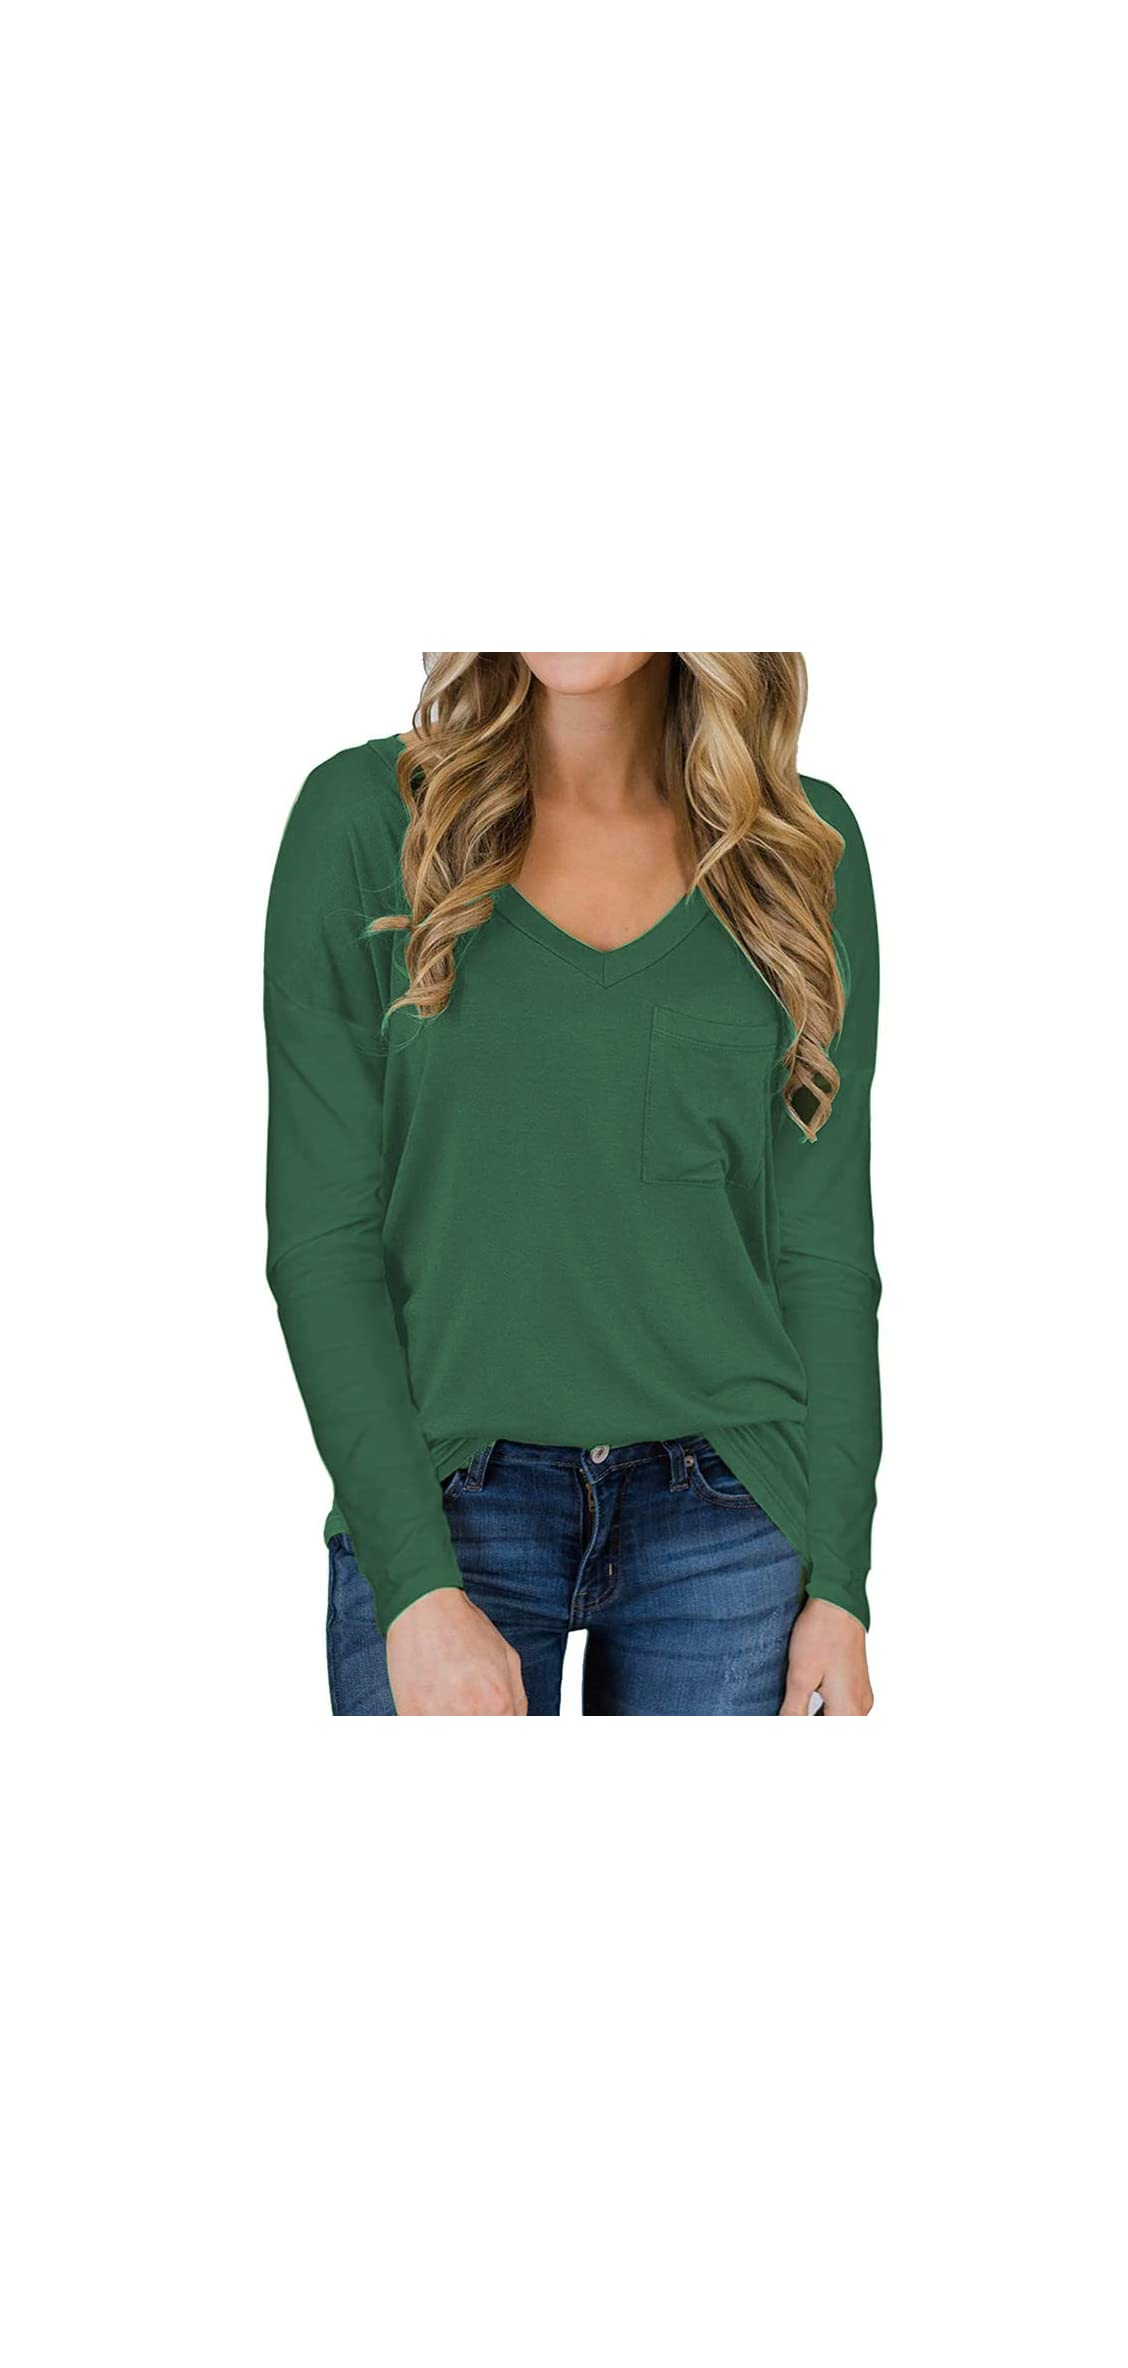 Women's Long Sleeve V-neck Shirts Loose Casual Tee With